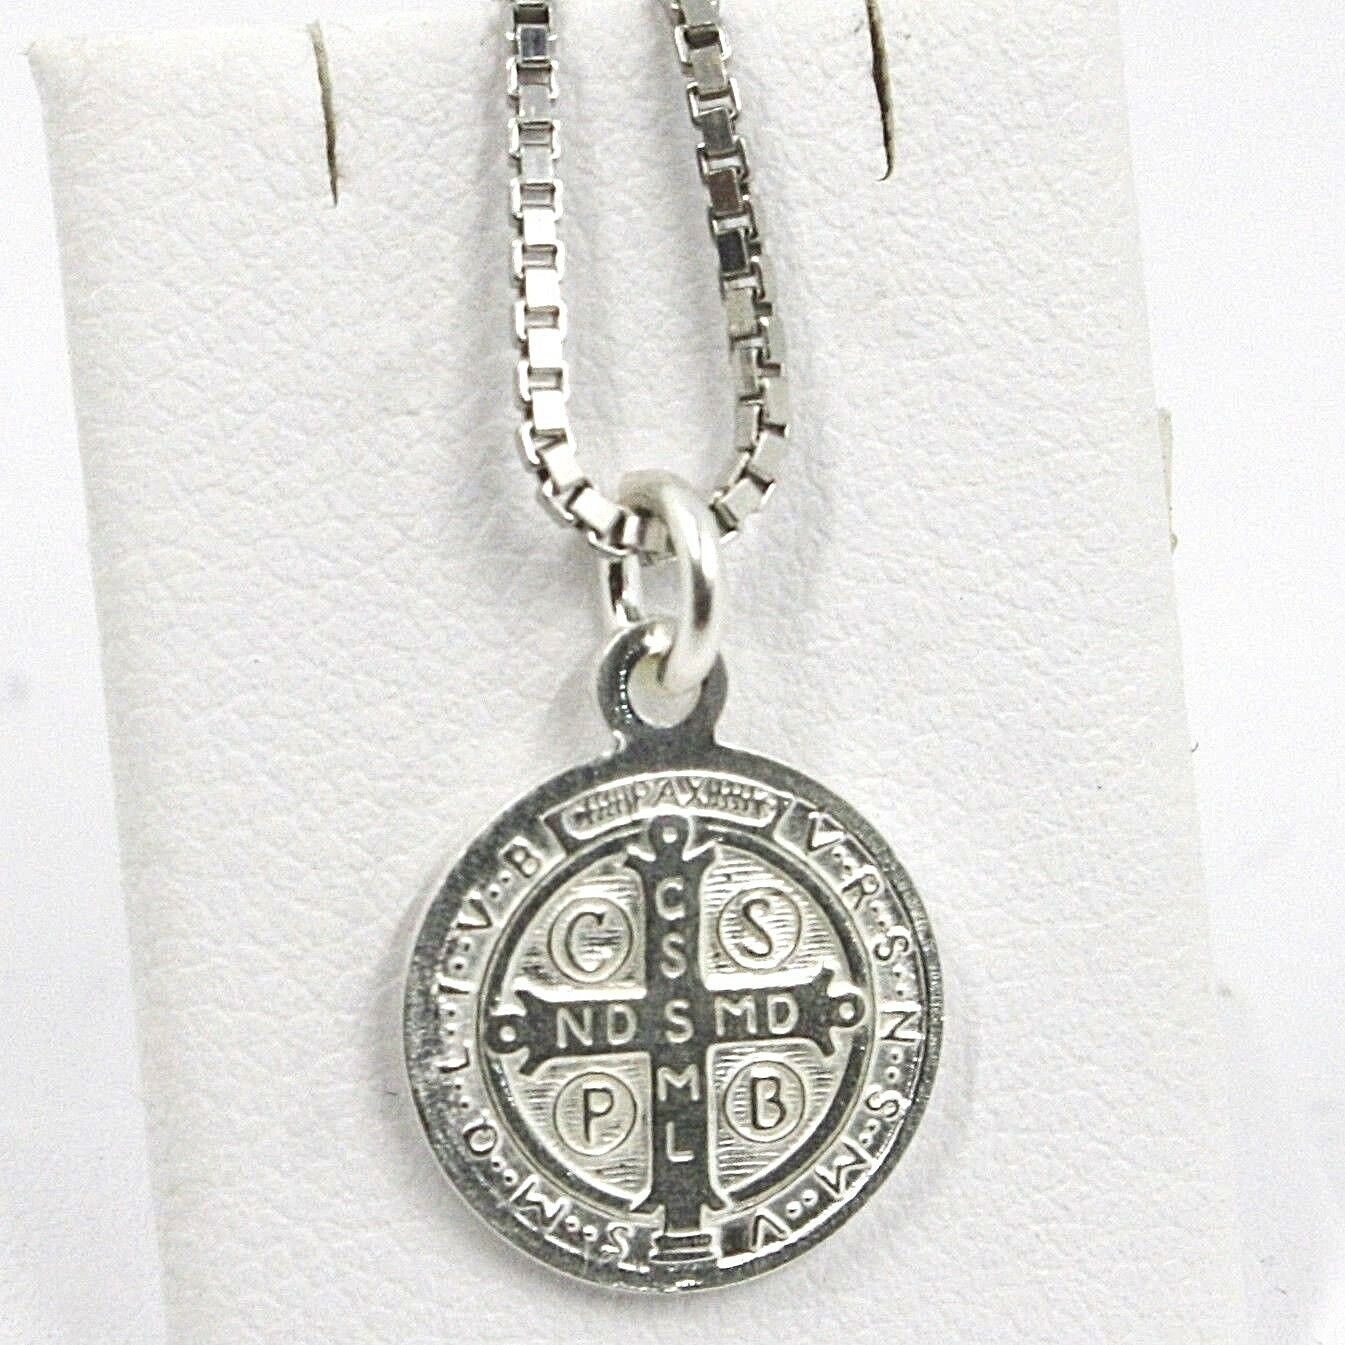 Venetian Chain 50 CM, MEDAL ST. BENEDICT, CROSS, SILVER 925 necklace